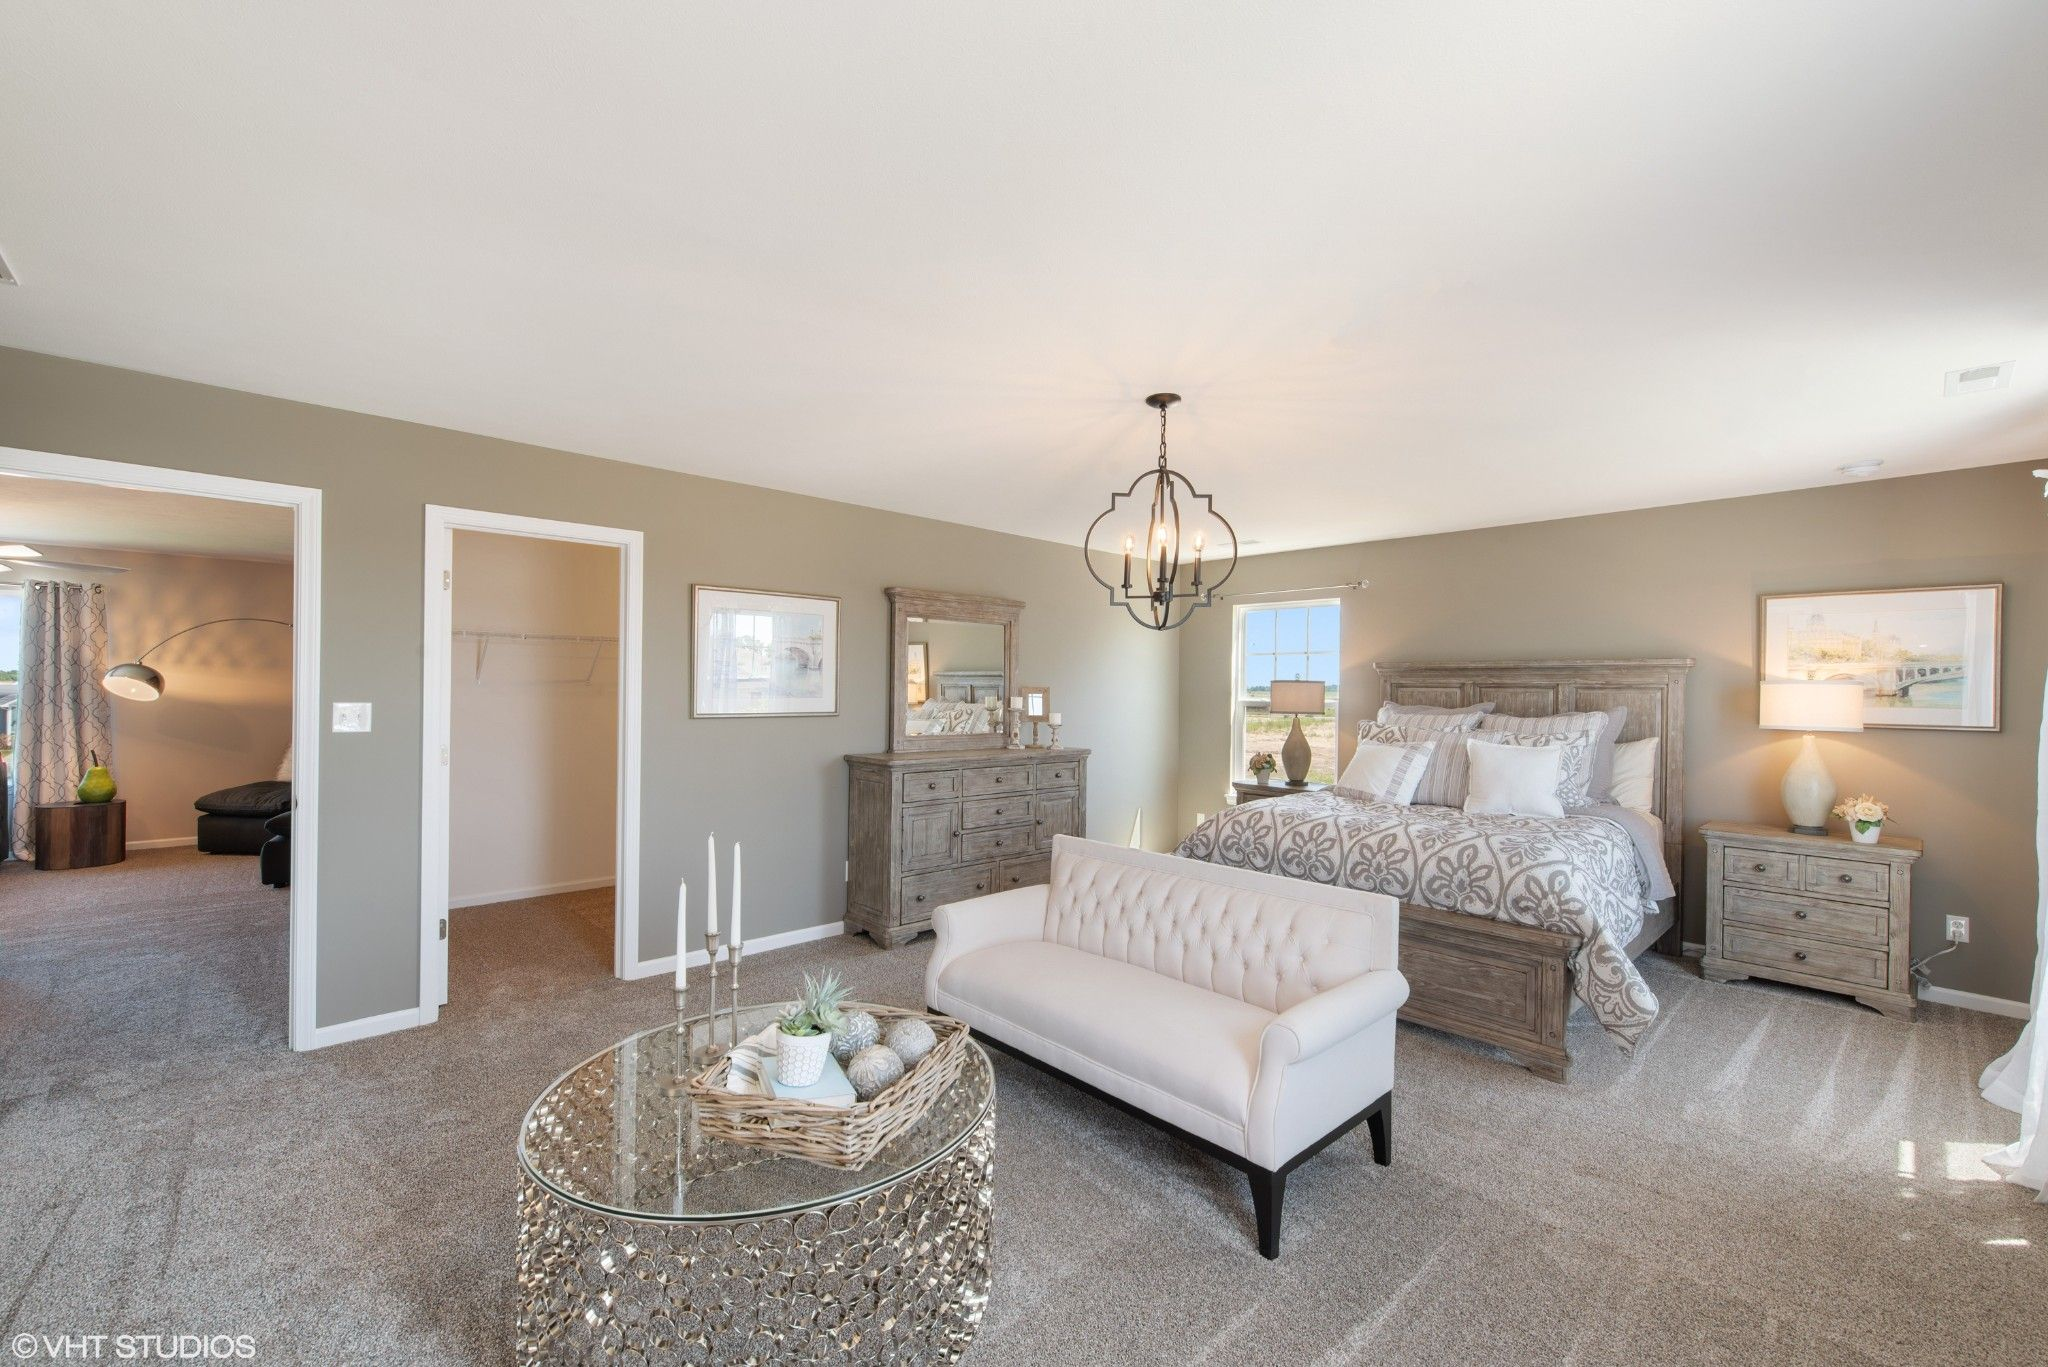 Bedroom featured in the Carson By Olthof Homes in Gary, IN